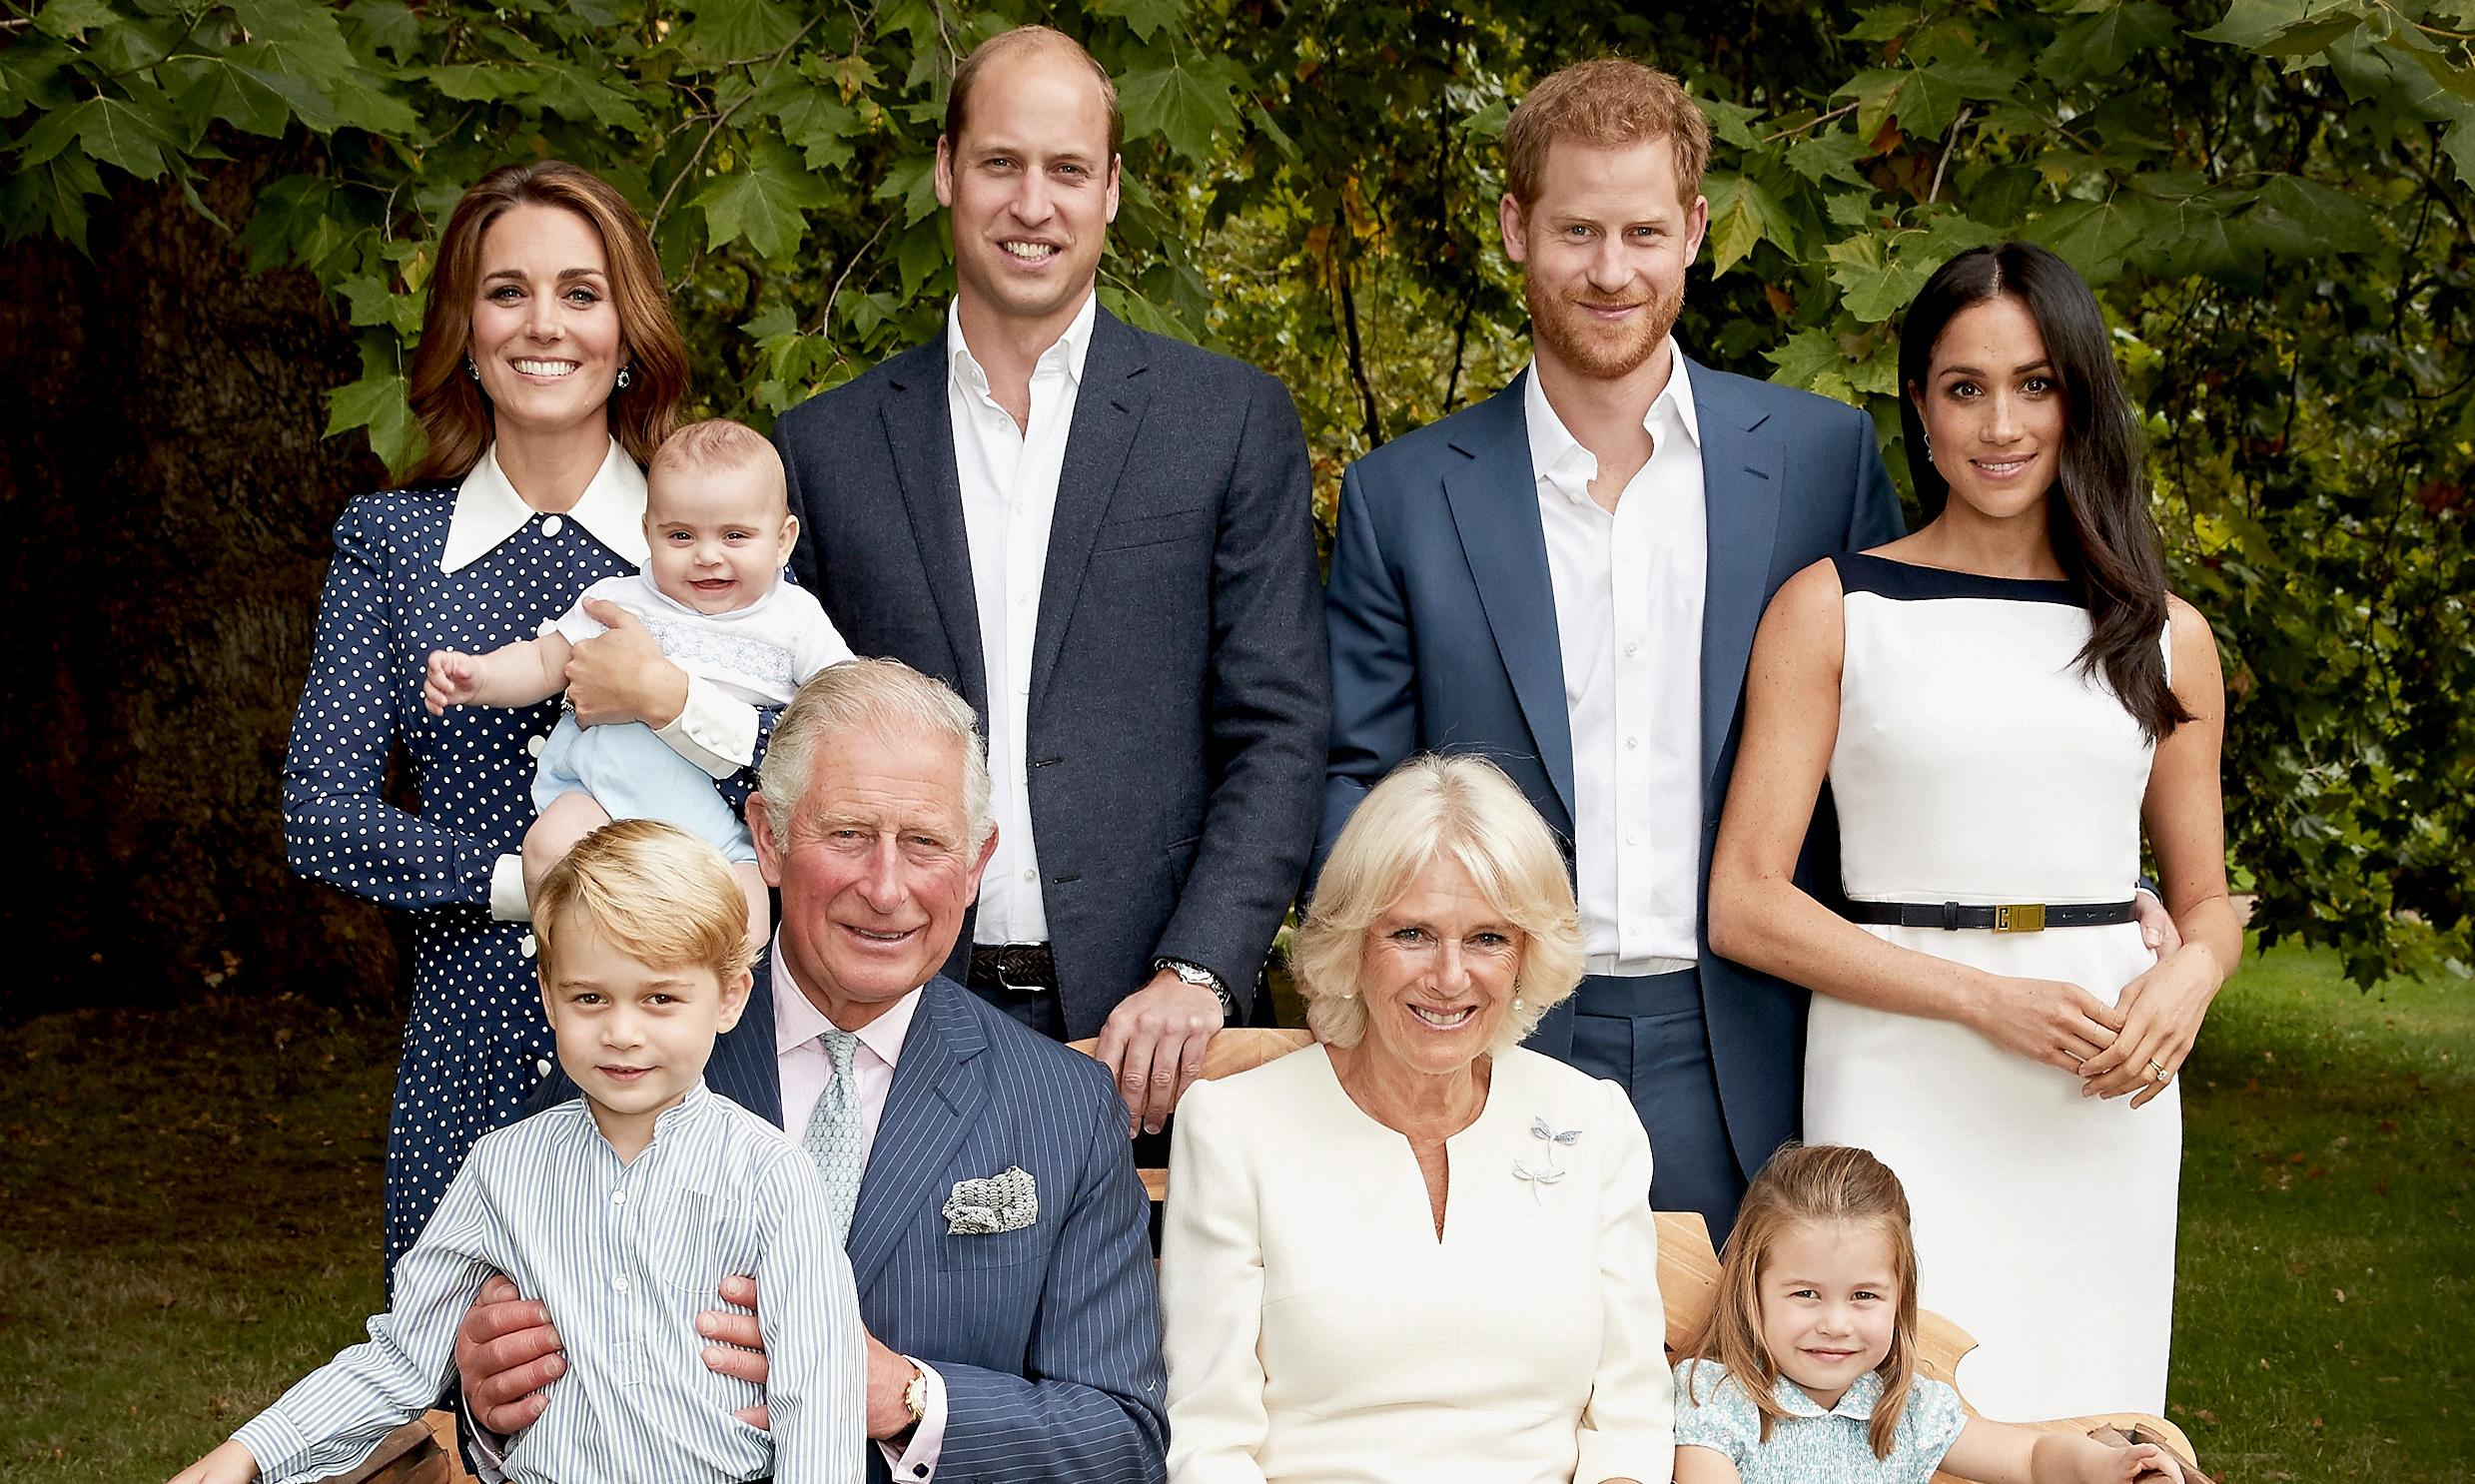 Prince Charles' 70th birthday marked with release of family photo